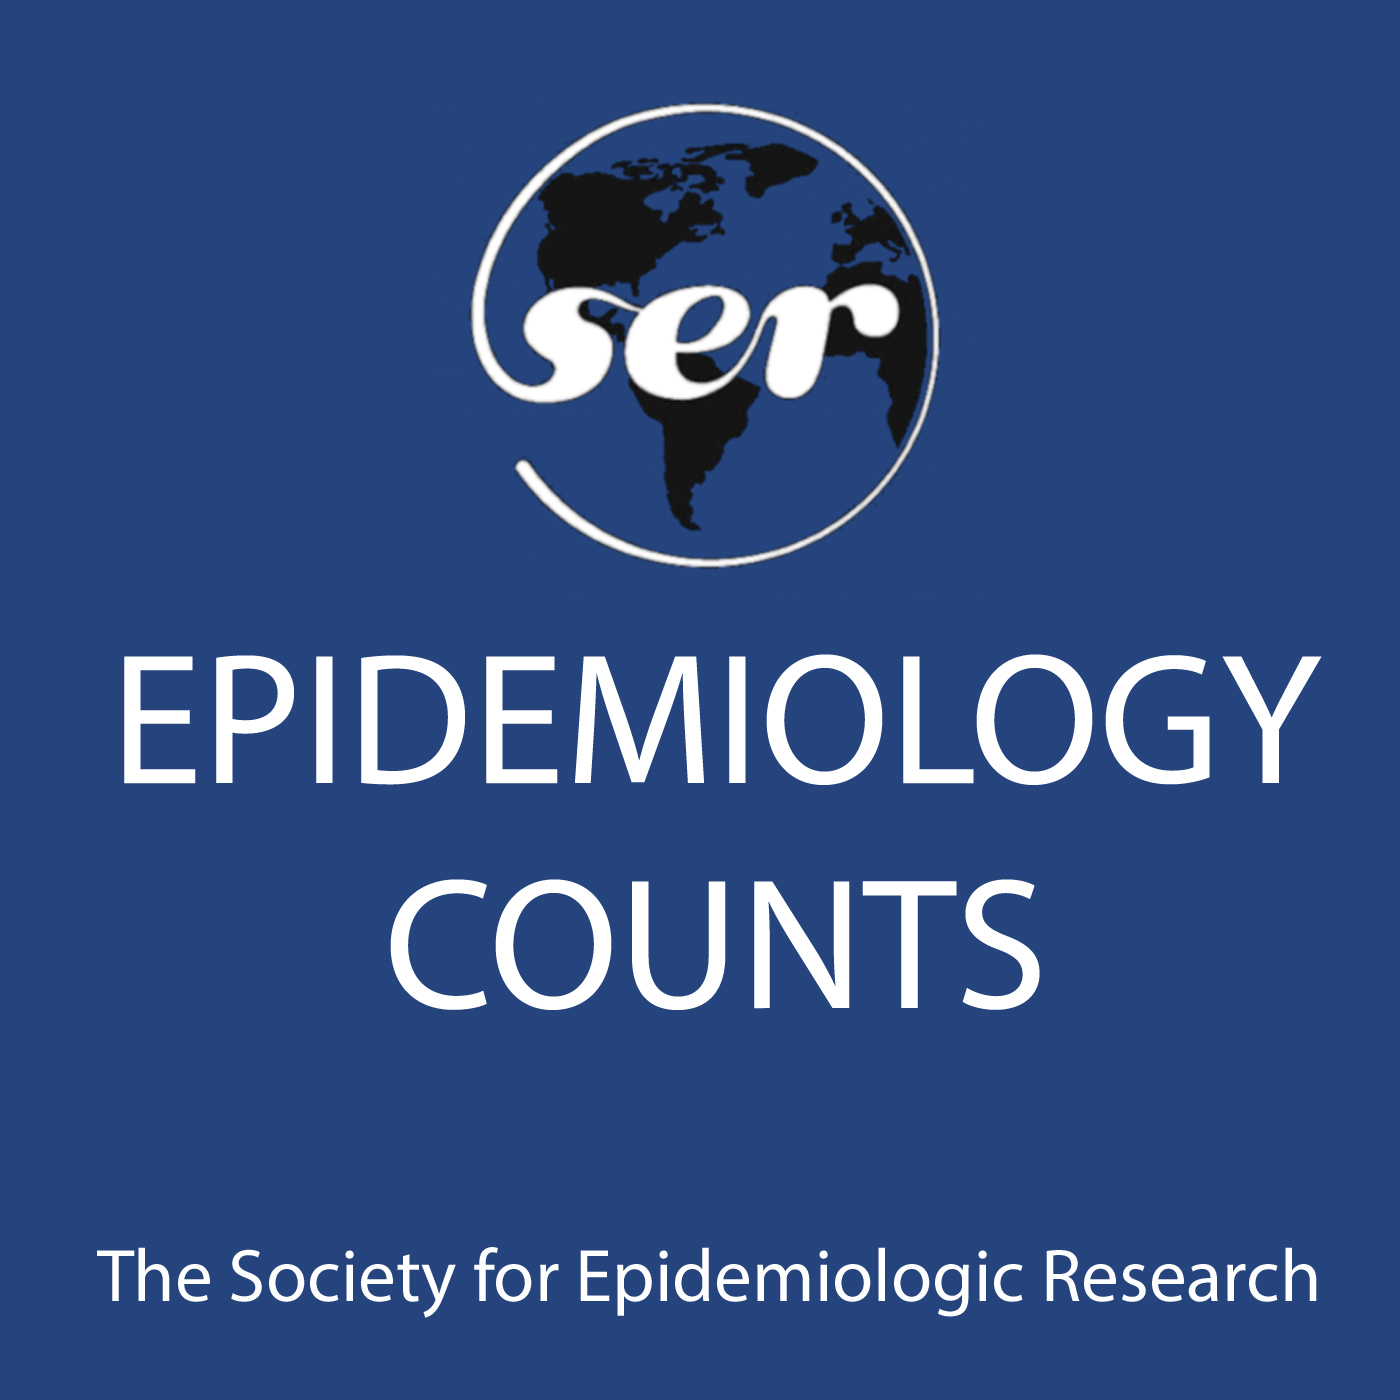 Epidemiology Counts from the Society for Epidemiologic Research